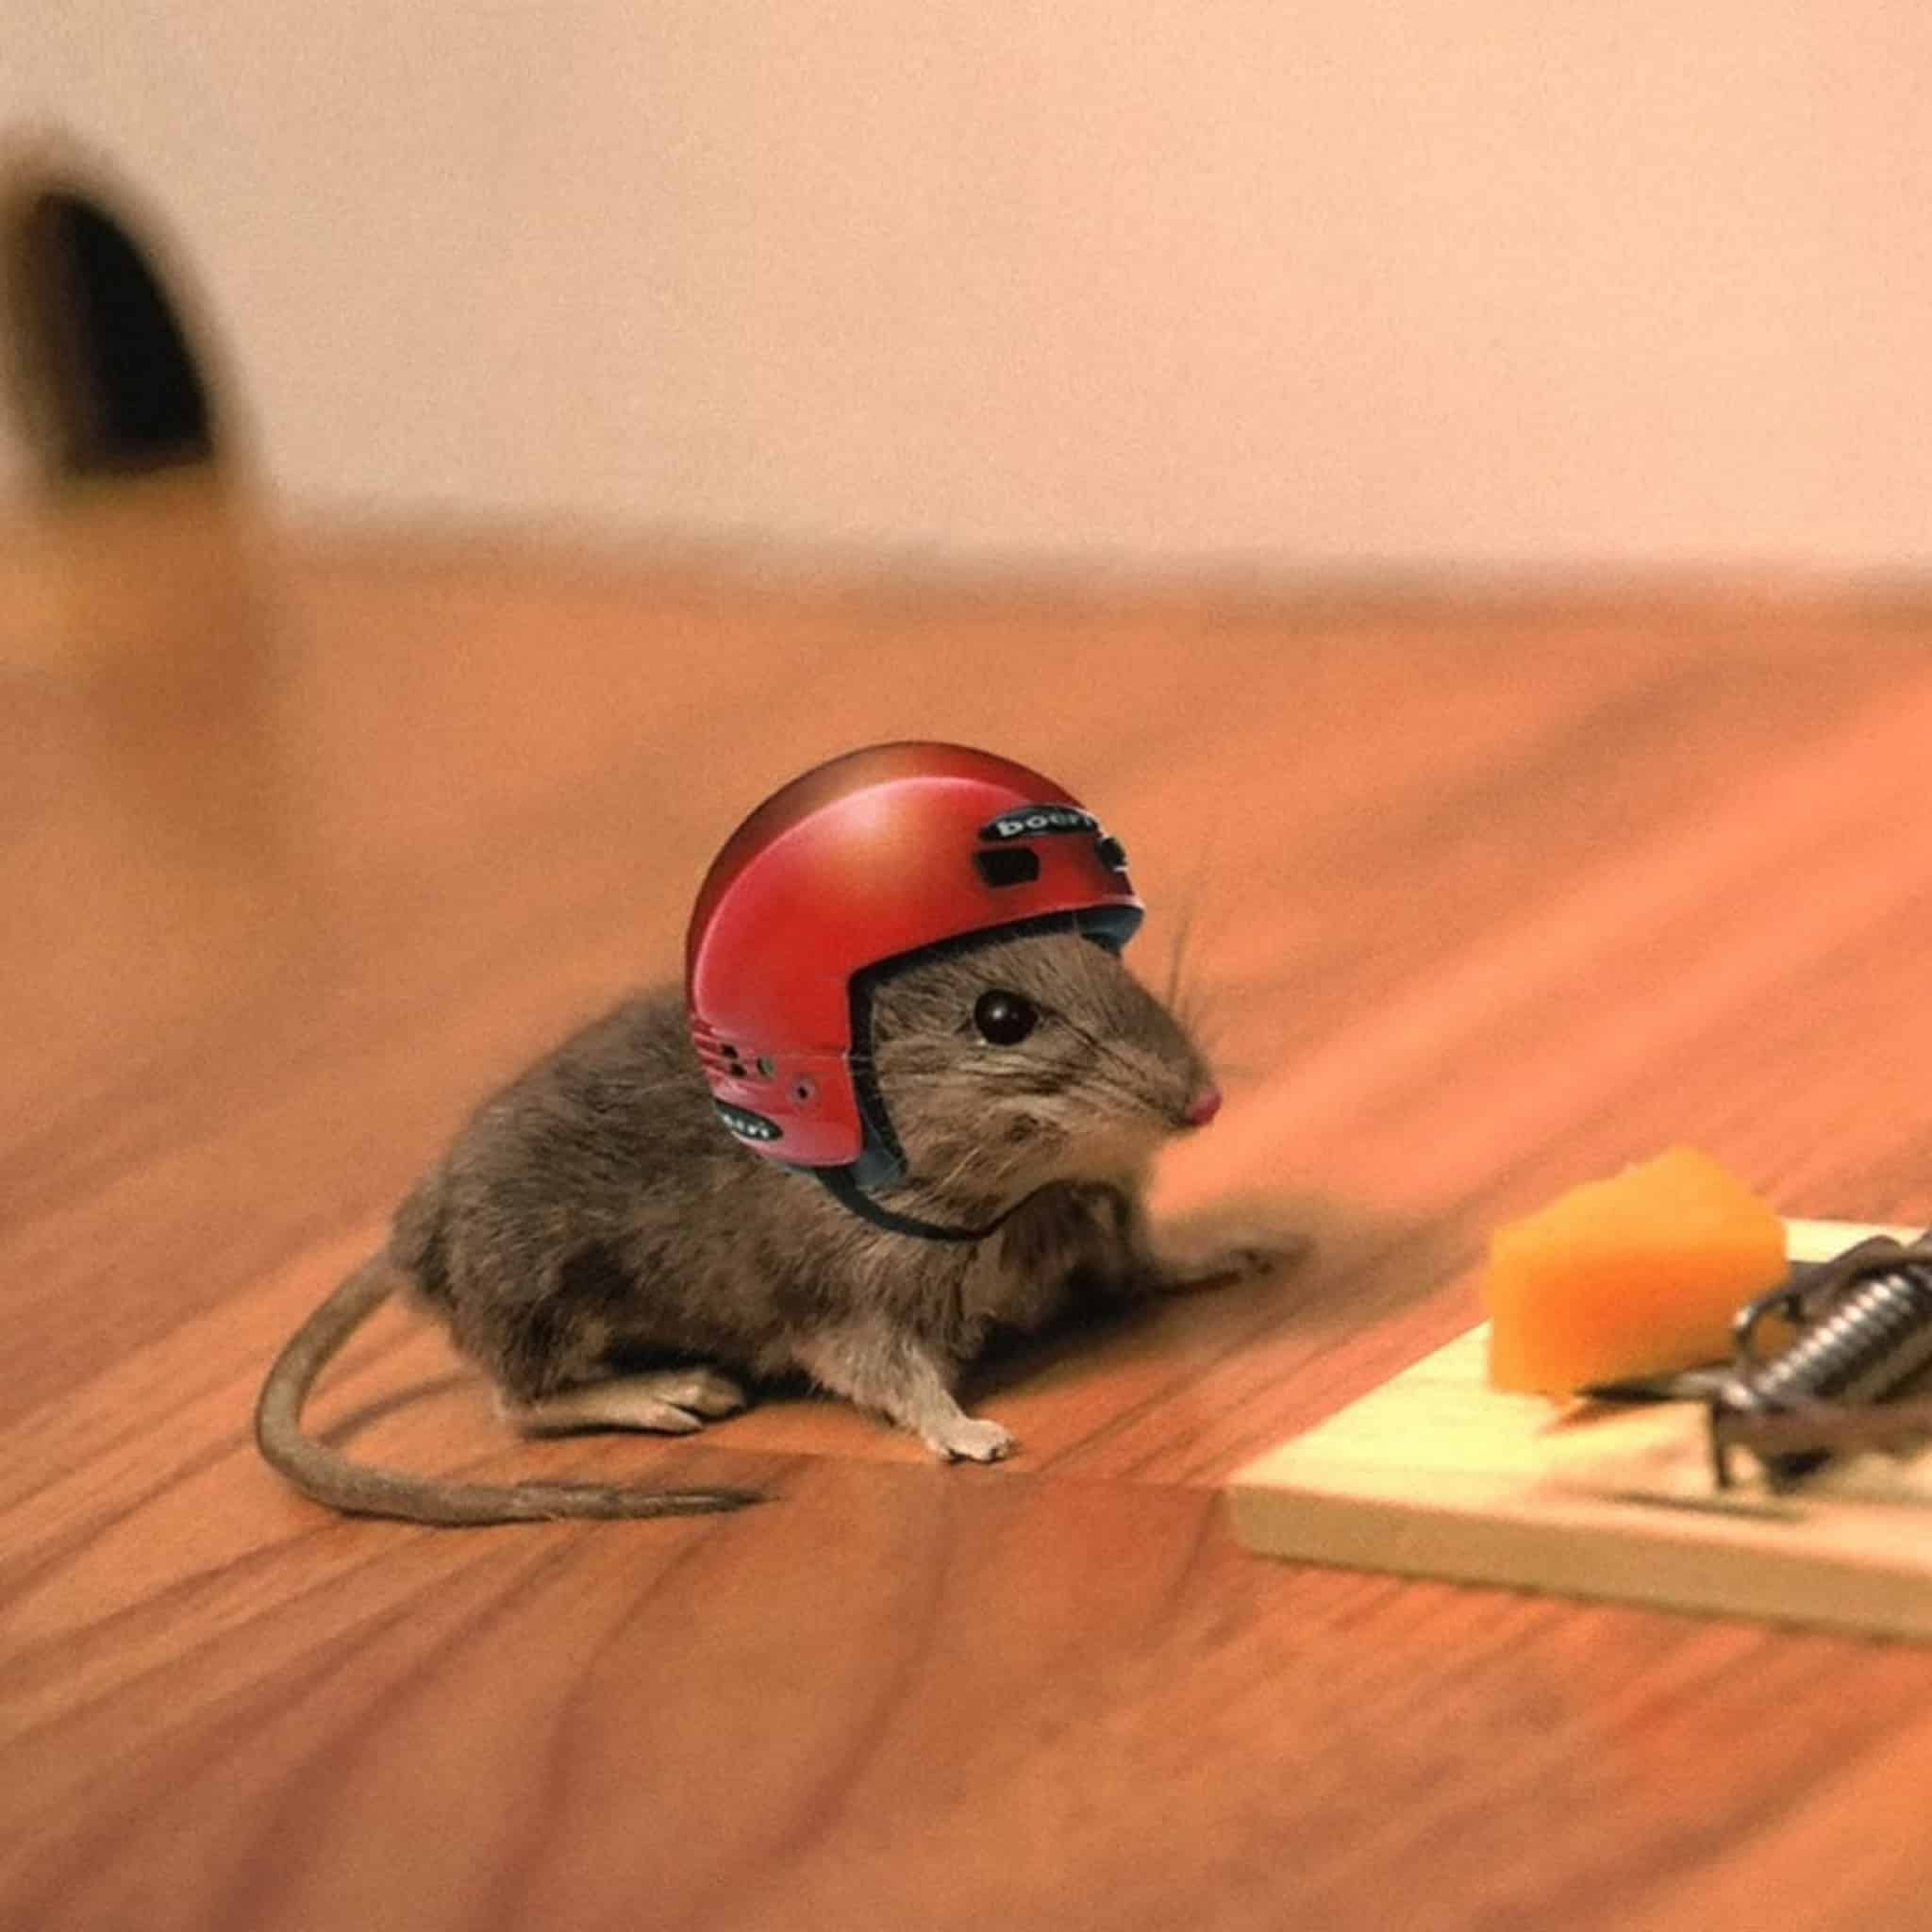 are mice smart enough to avoid traps